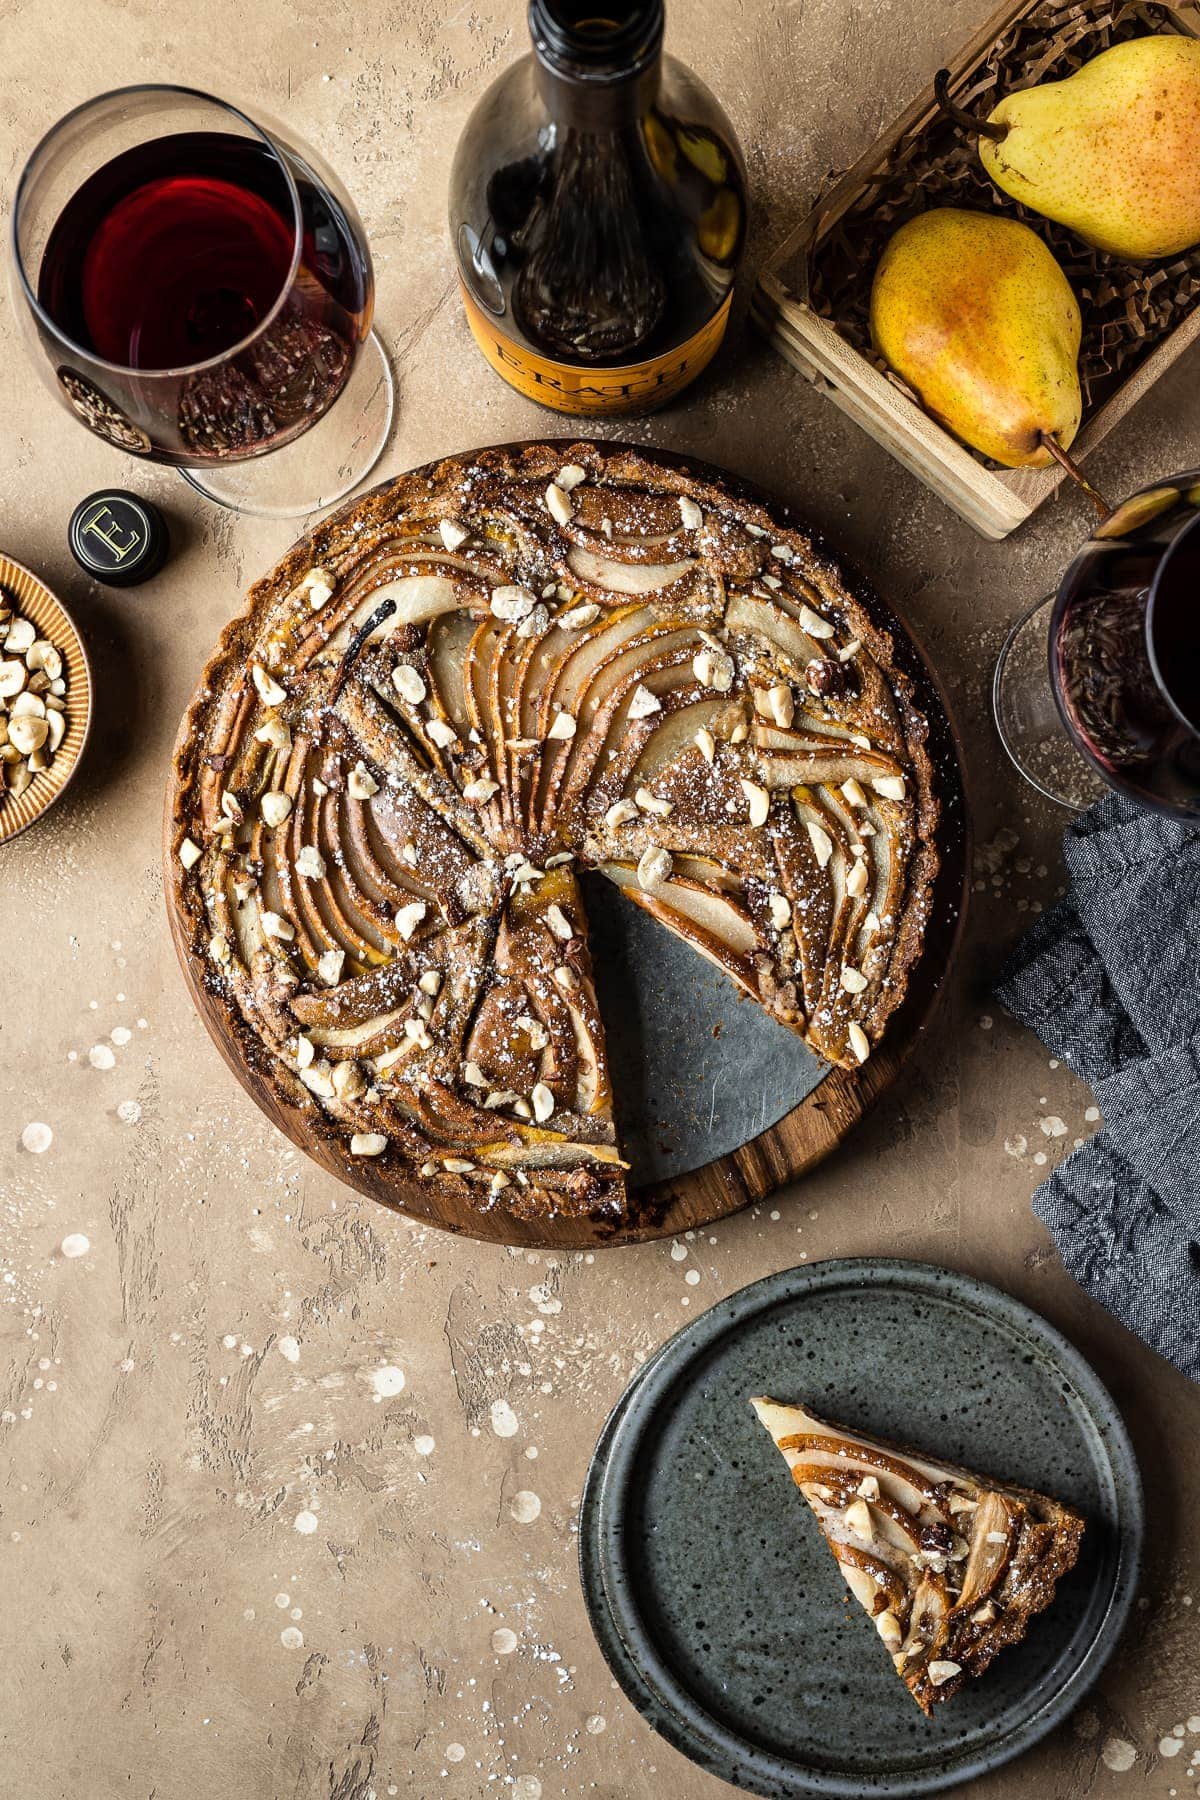 A golden brown pear tart with a slice cut out and resting on a blue grey ceramic plate nearby. Surrounding the tart are a bowl of chopped hazelnuts, pears in a wooden crate, a wine bottle and two wine glasses filled with red wine, and a dark blue linen napkin. Everything rests on a textured tan background.